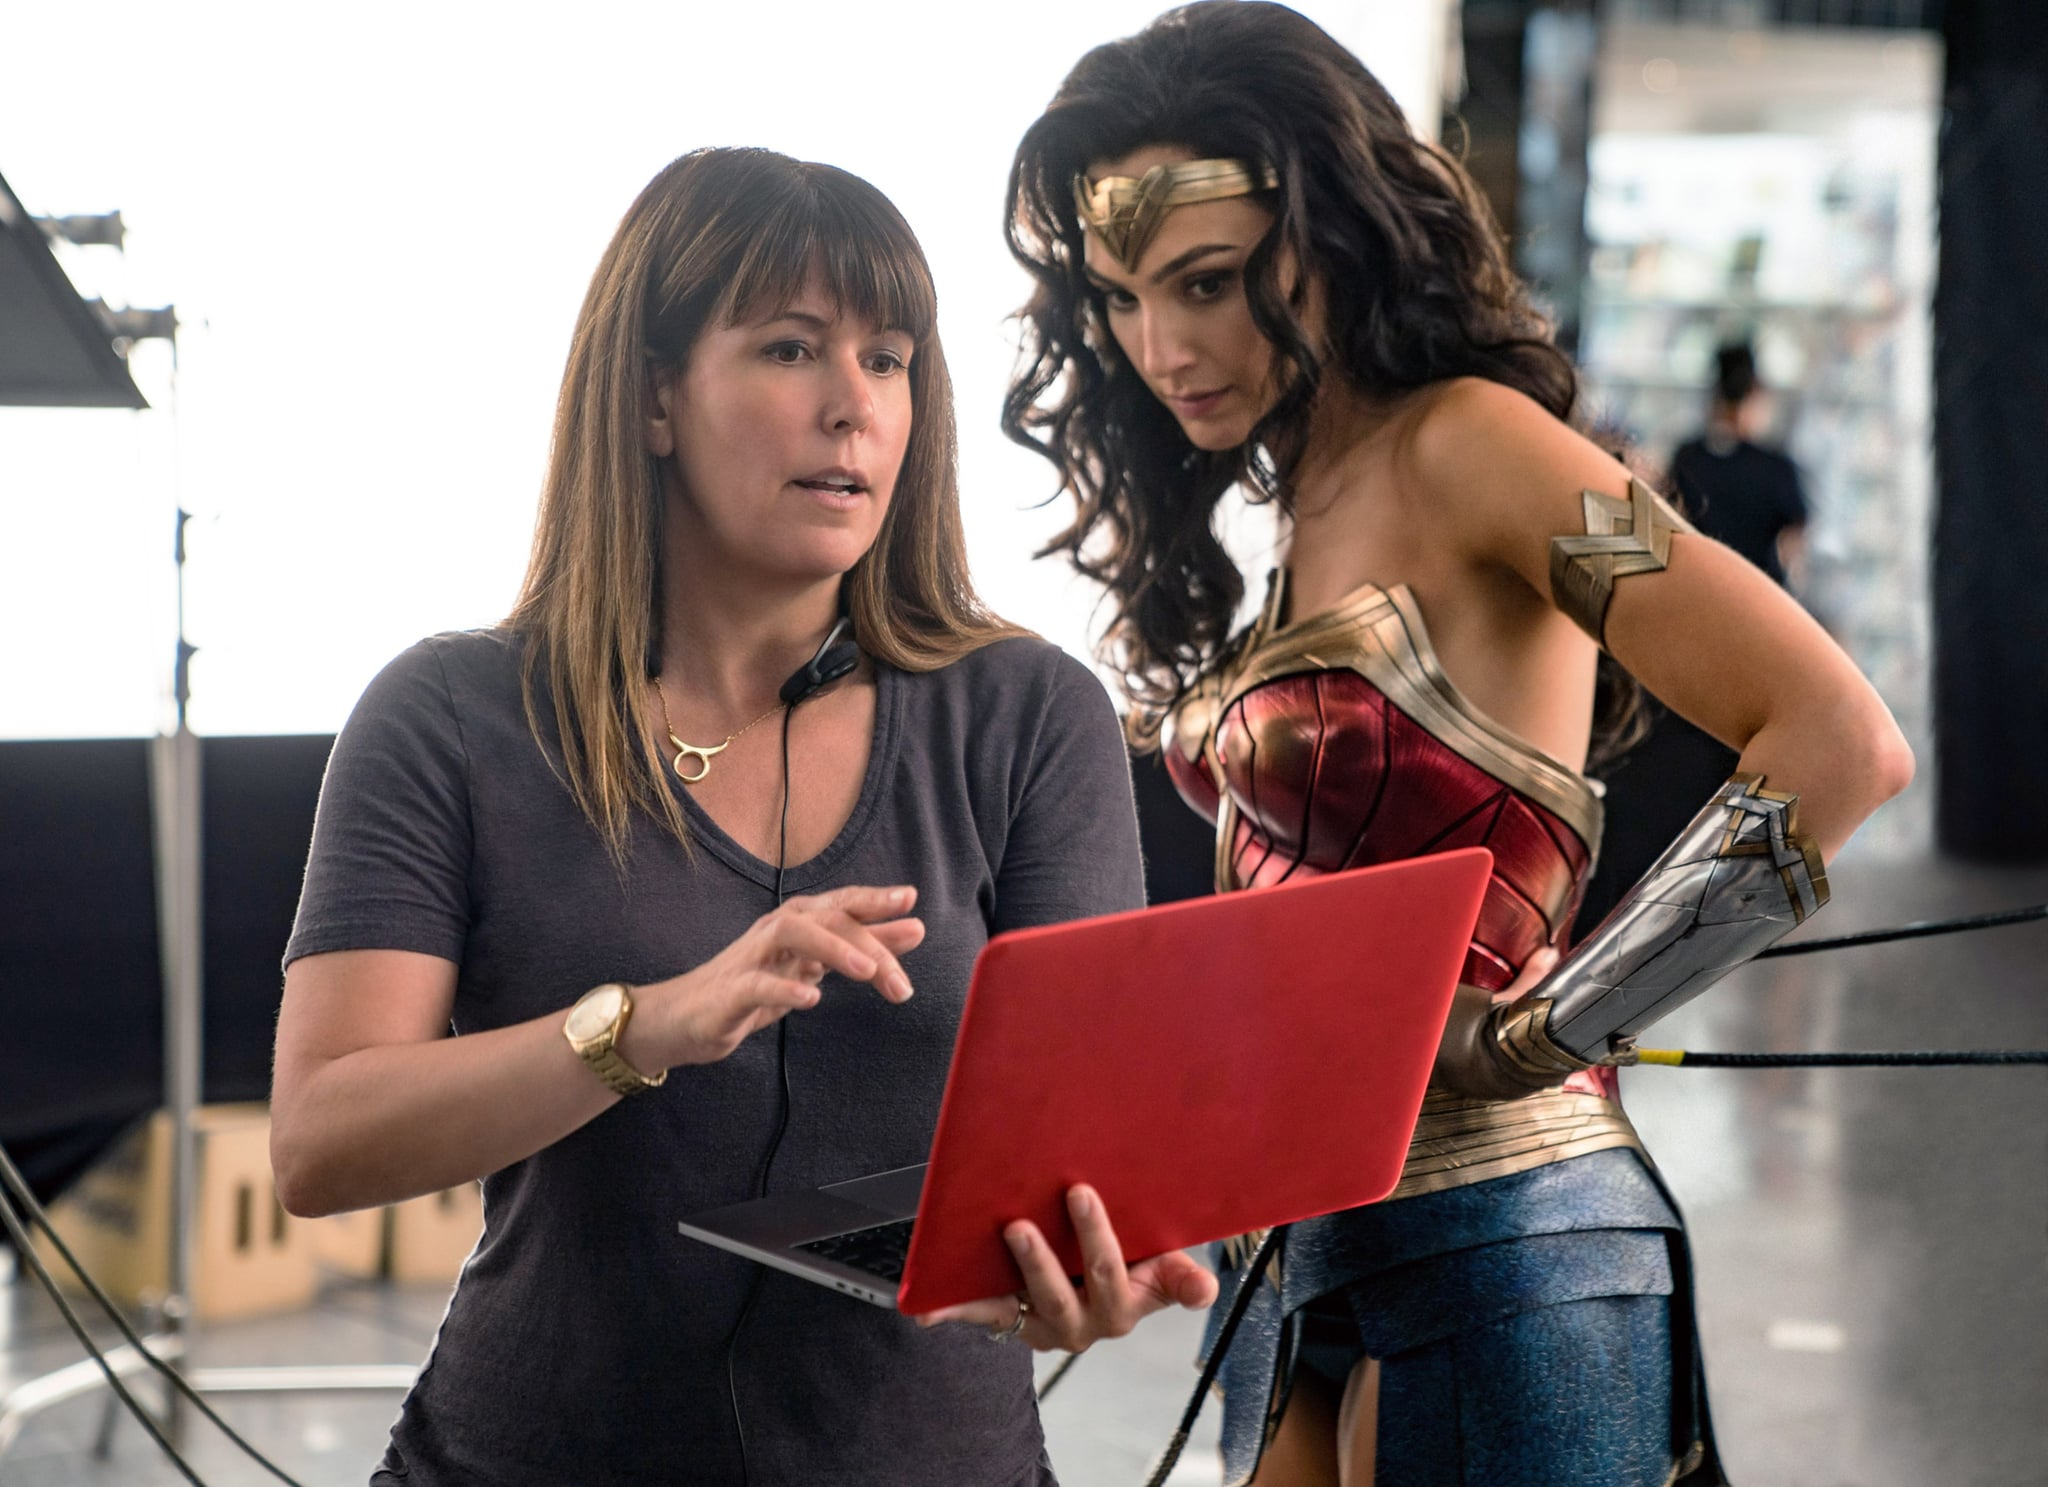 WONDER WOMAN 1984, from left: director Patty Jenkins, Gal Gadot, on-set, 2020. ph: Clay Enos /  Warner Bros. / Courtesy Everett Collection